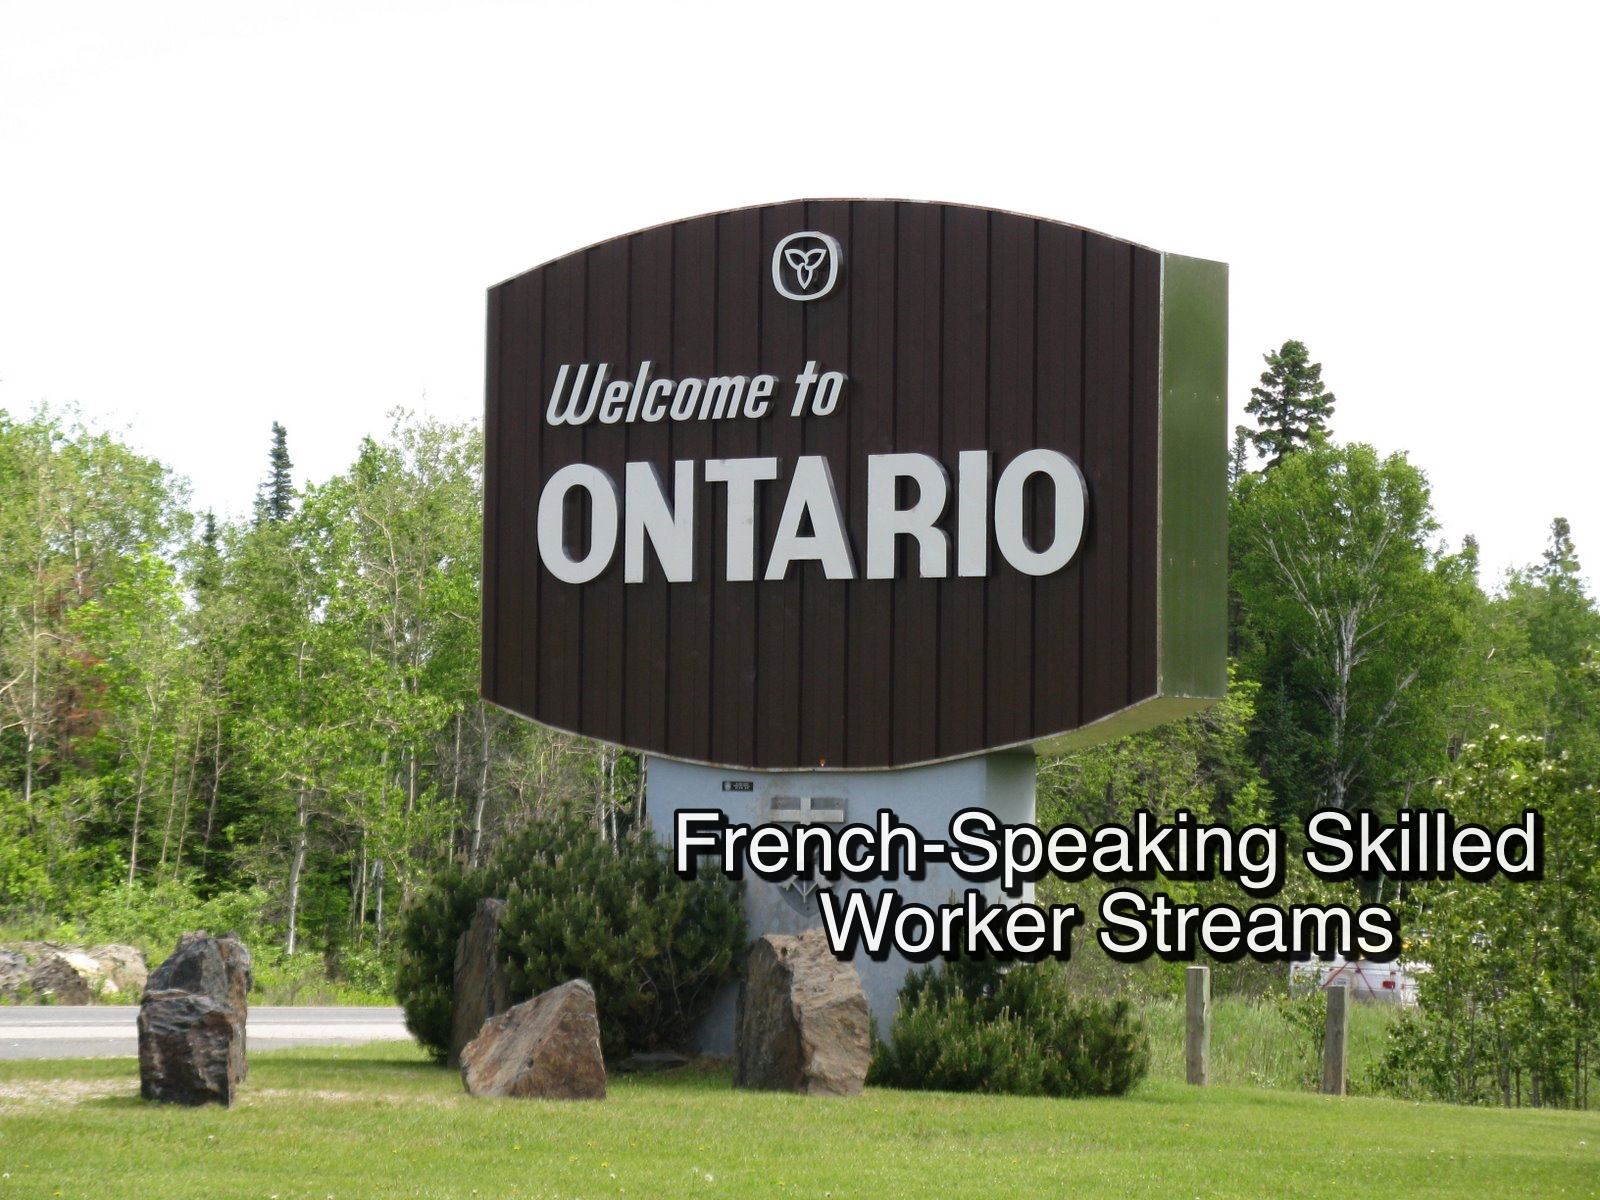 Ontario Issues Fresh Invitations to Skilled Trades and French-Speaking Skilled Worker Streams